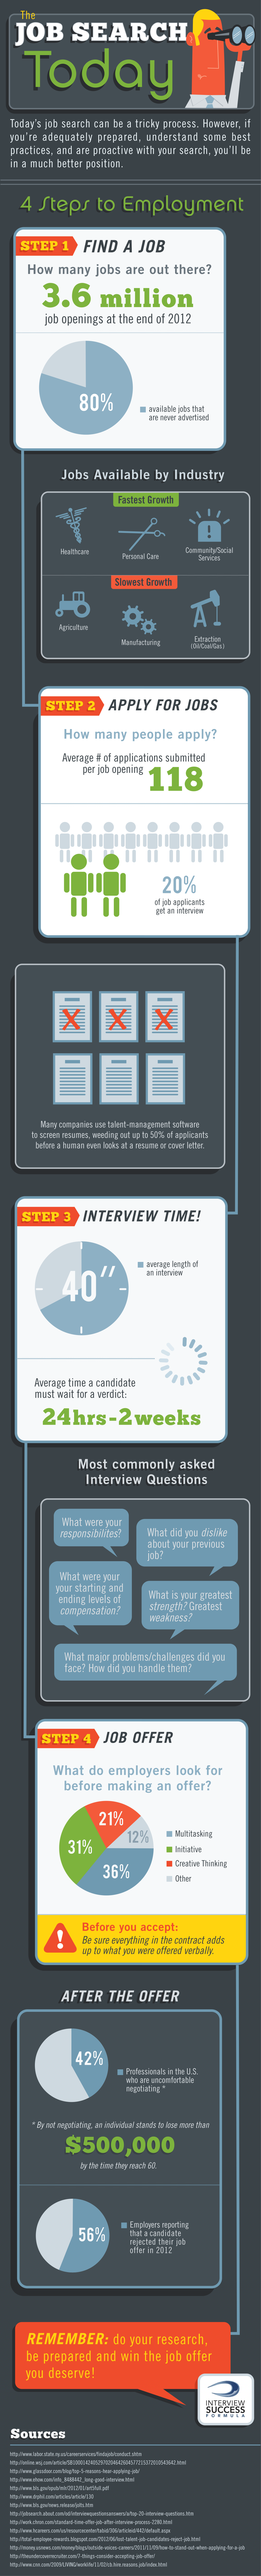 ISF JobSearchToday972 Succeeding in the Job Search Today [INFOGRAPHIC]